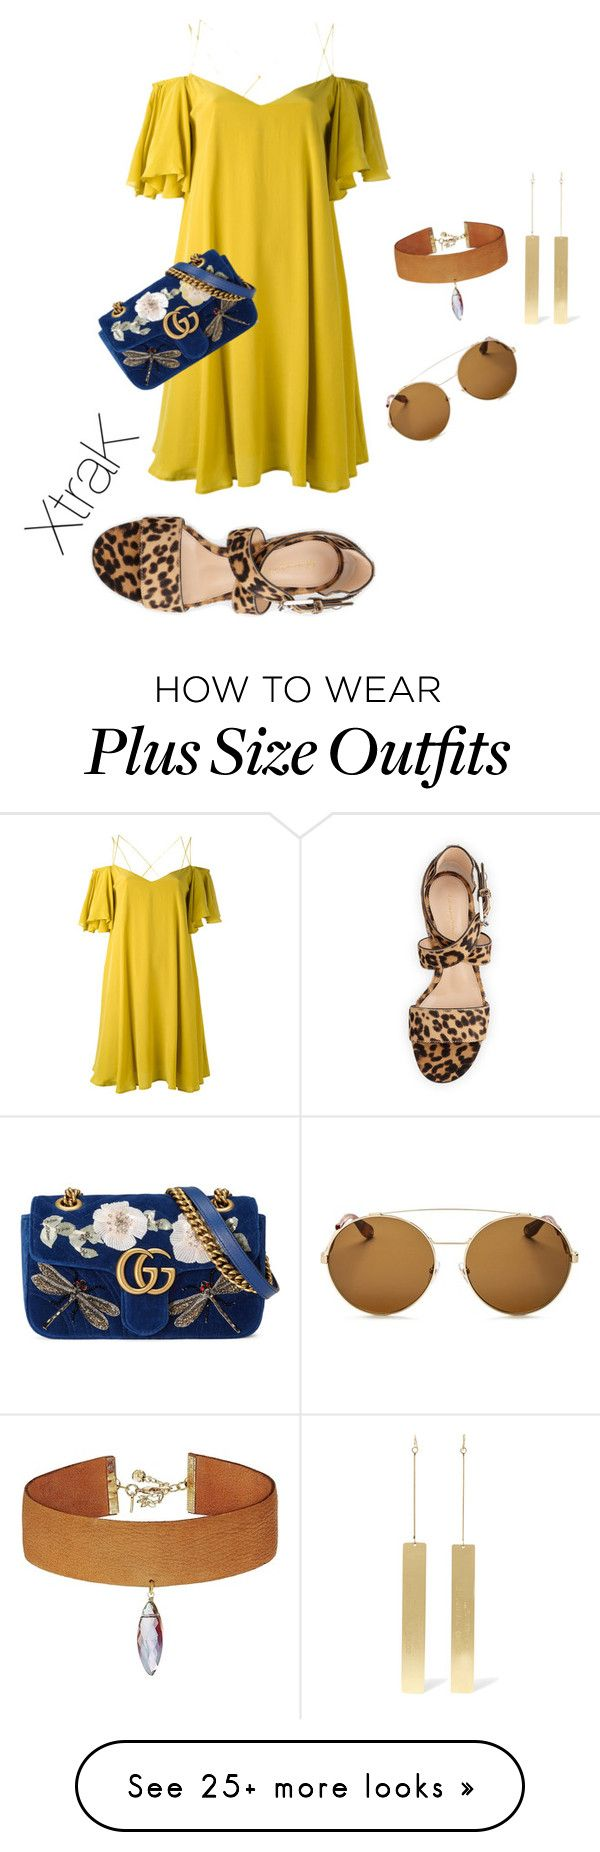 """Plus size fancy vacay night look"" by xtrak on Polyvore featuring Essentiel, Off-White, Vanessa Mooney, Givenchy, Gianvito Rossi and Gucci"